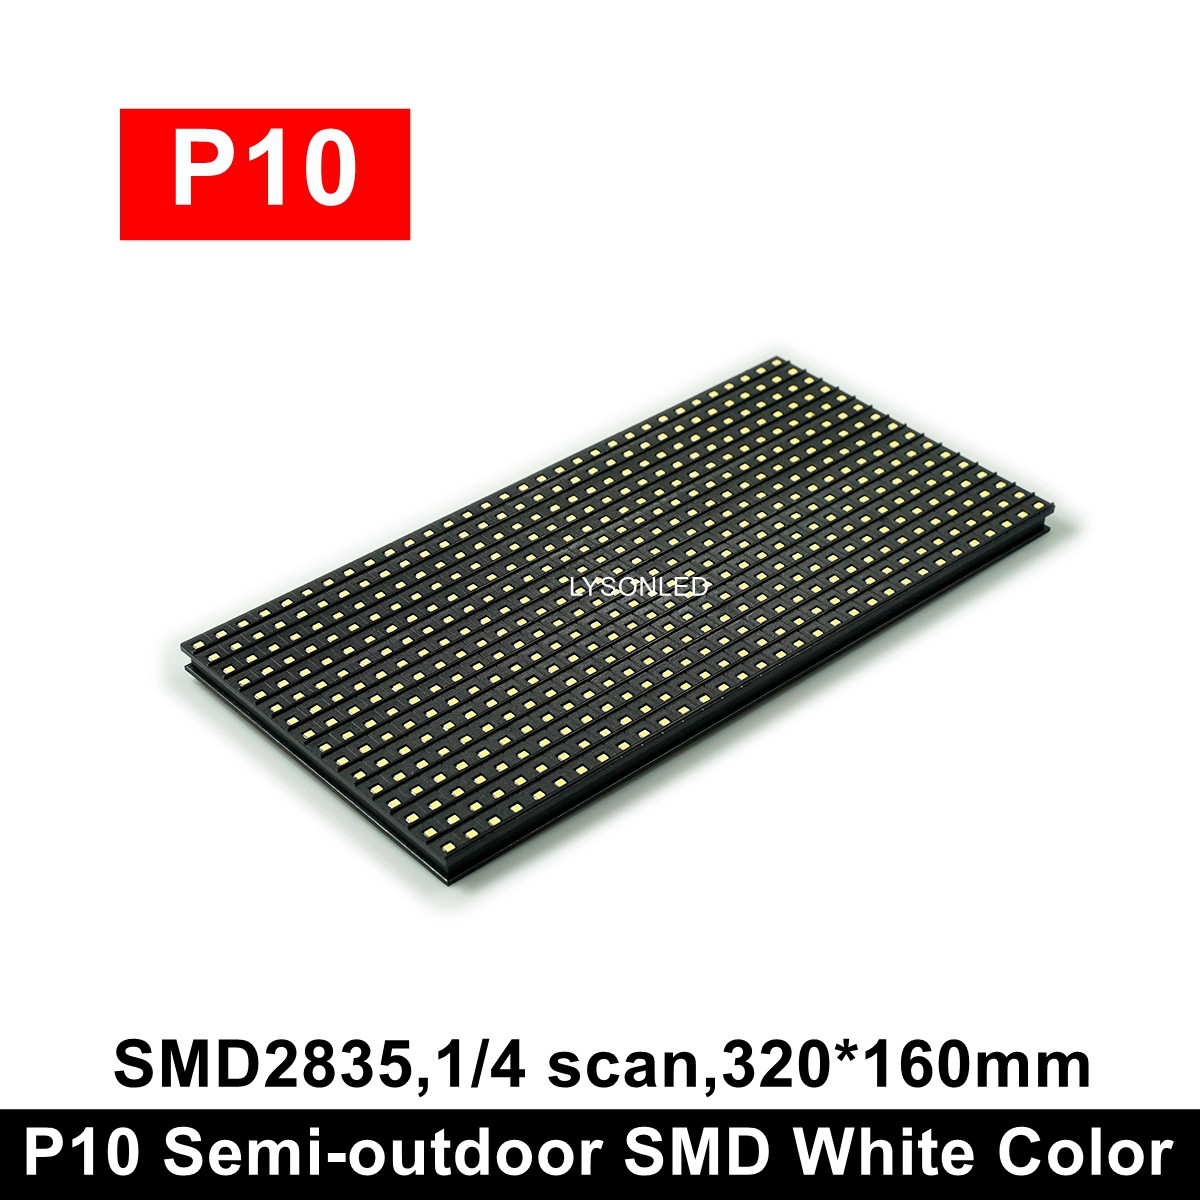 320*160mm P10 Semi-outdoor Single Color White / Red SMD LED Module 32x16 Pixels For Indoor Running LED Display Sign Board